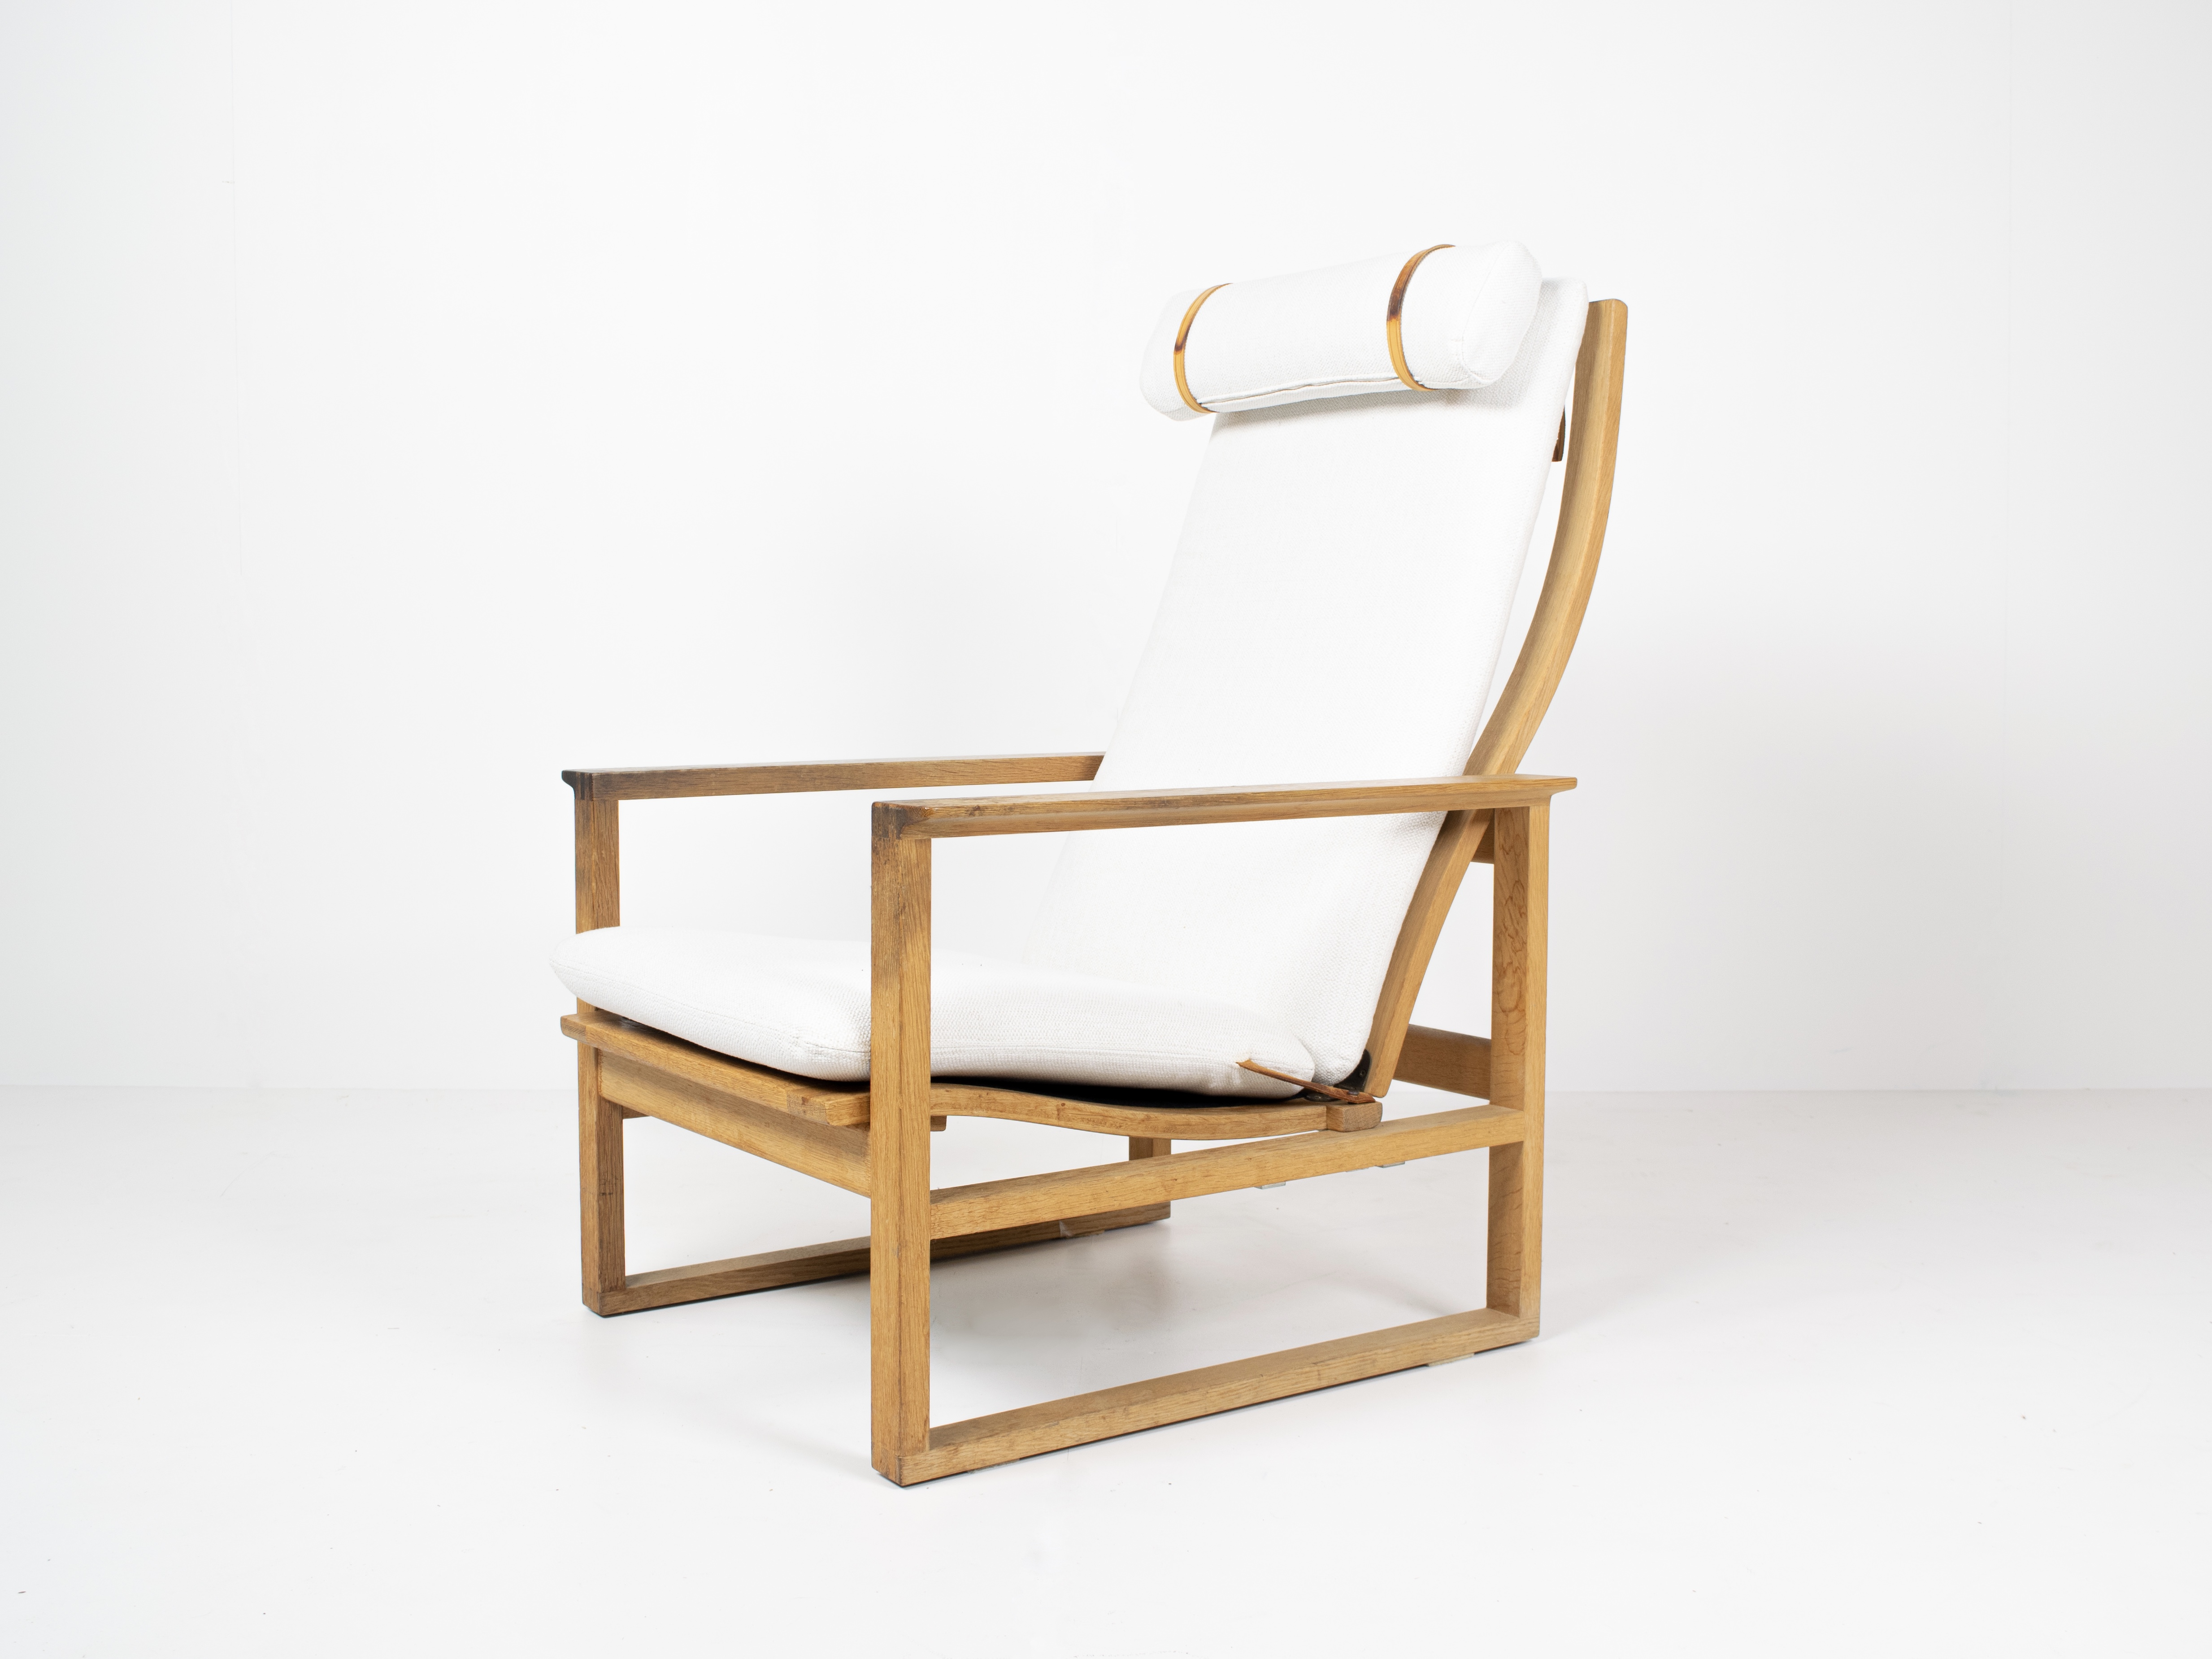 Model 2254 Lounge Chair by Børge Mogensen for Fredericia Stolefabrik, 1960s